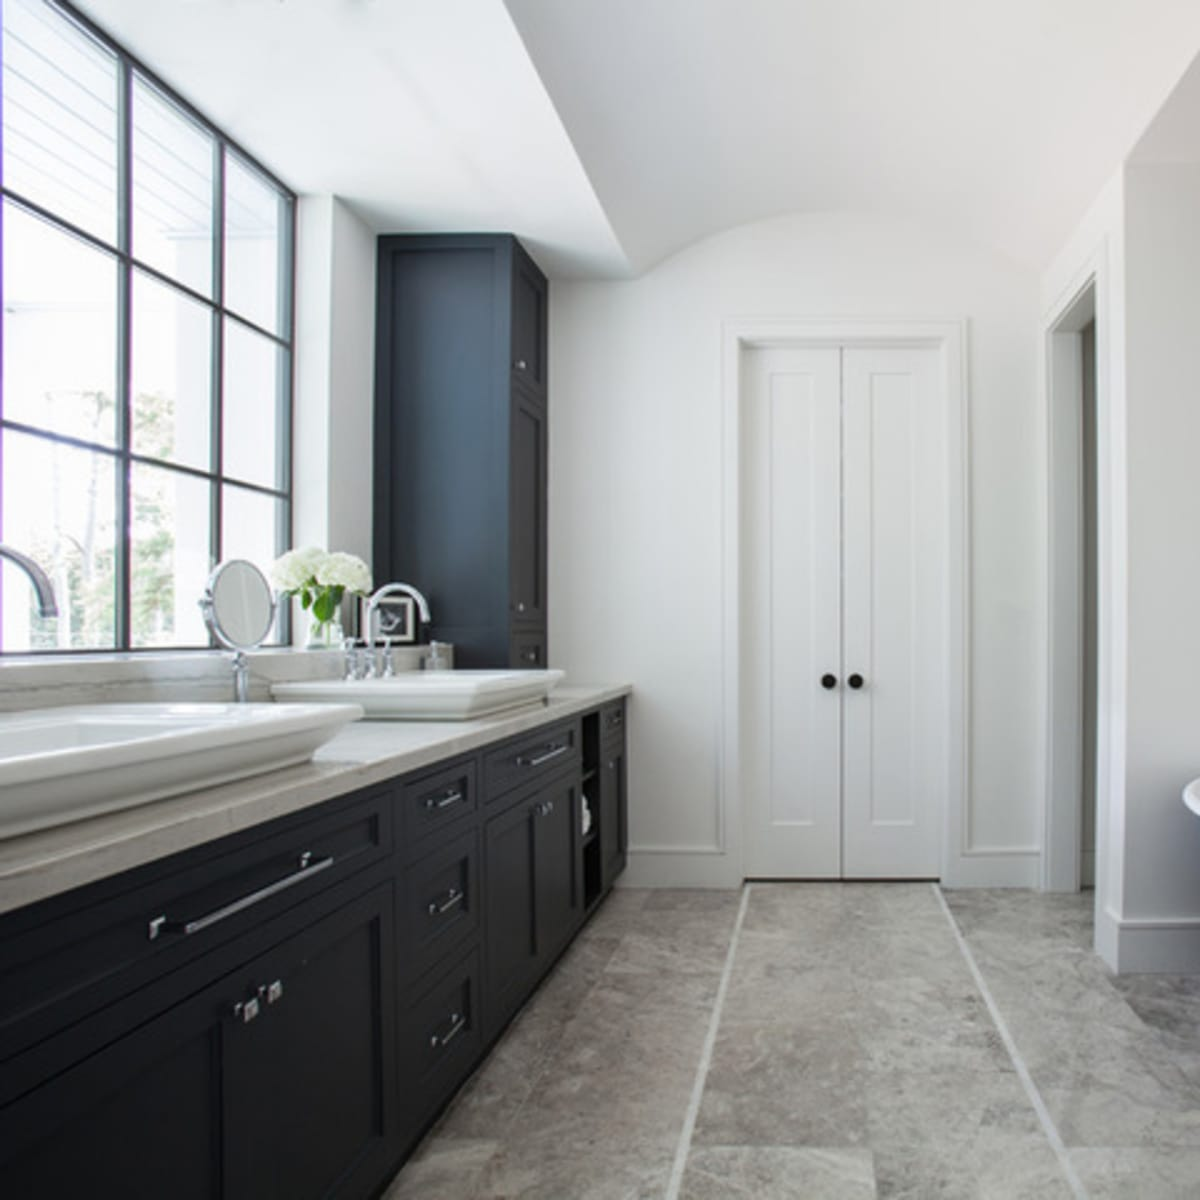 Houzz Houston house home Southern Americana Spanish colonial June 2016 bathroom